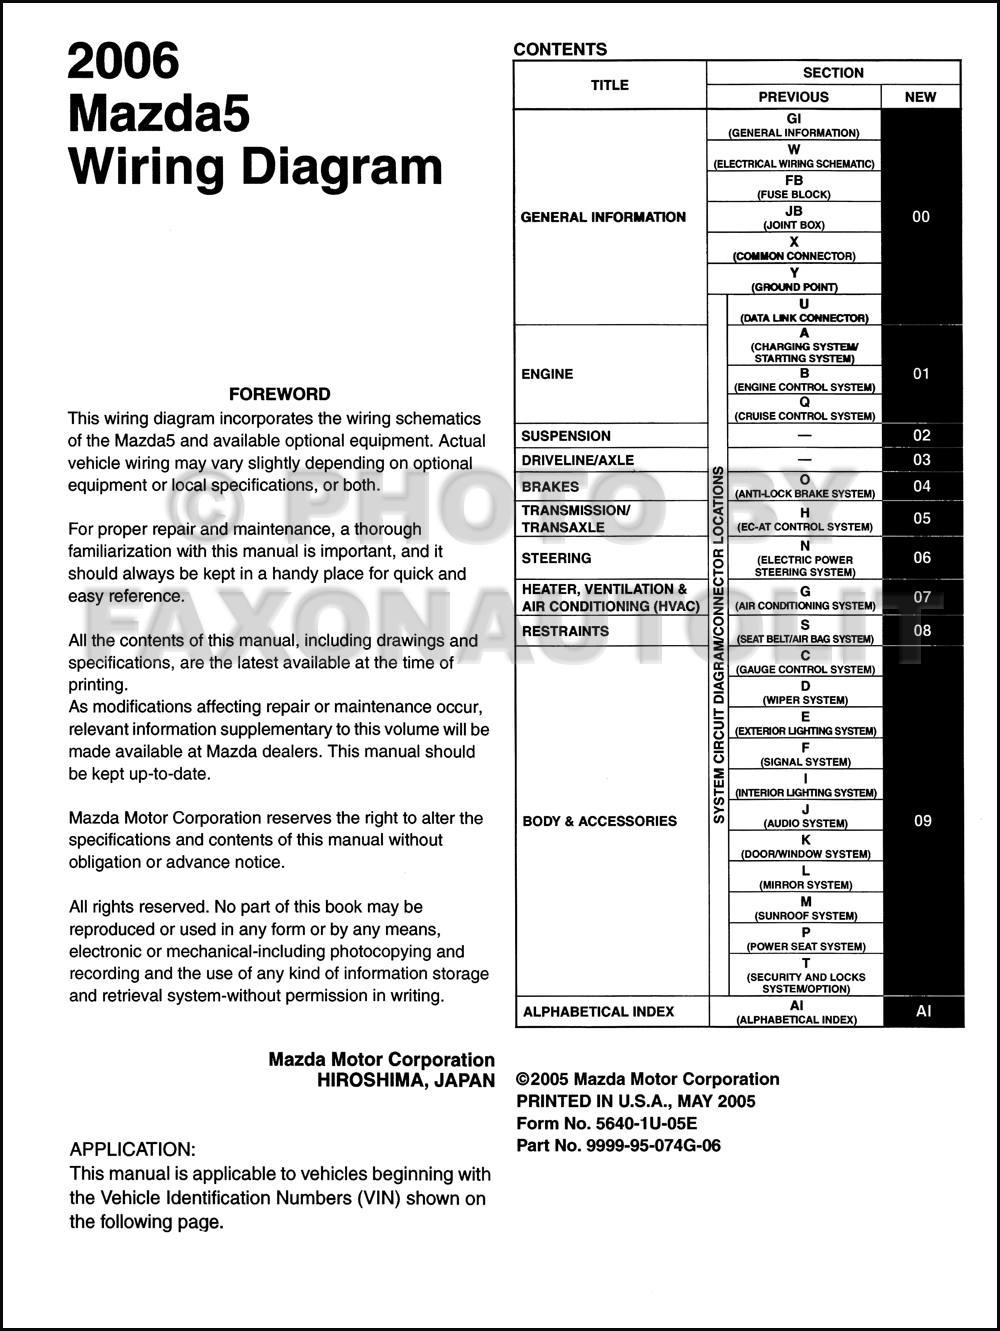 2006 Mazda 5 Wiring Diagram Manual Original. click on thumbnail to zoom